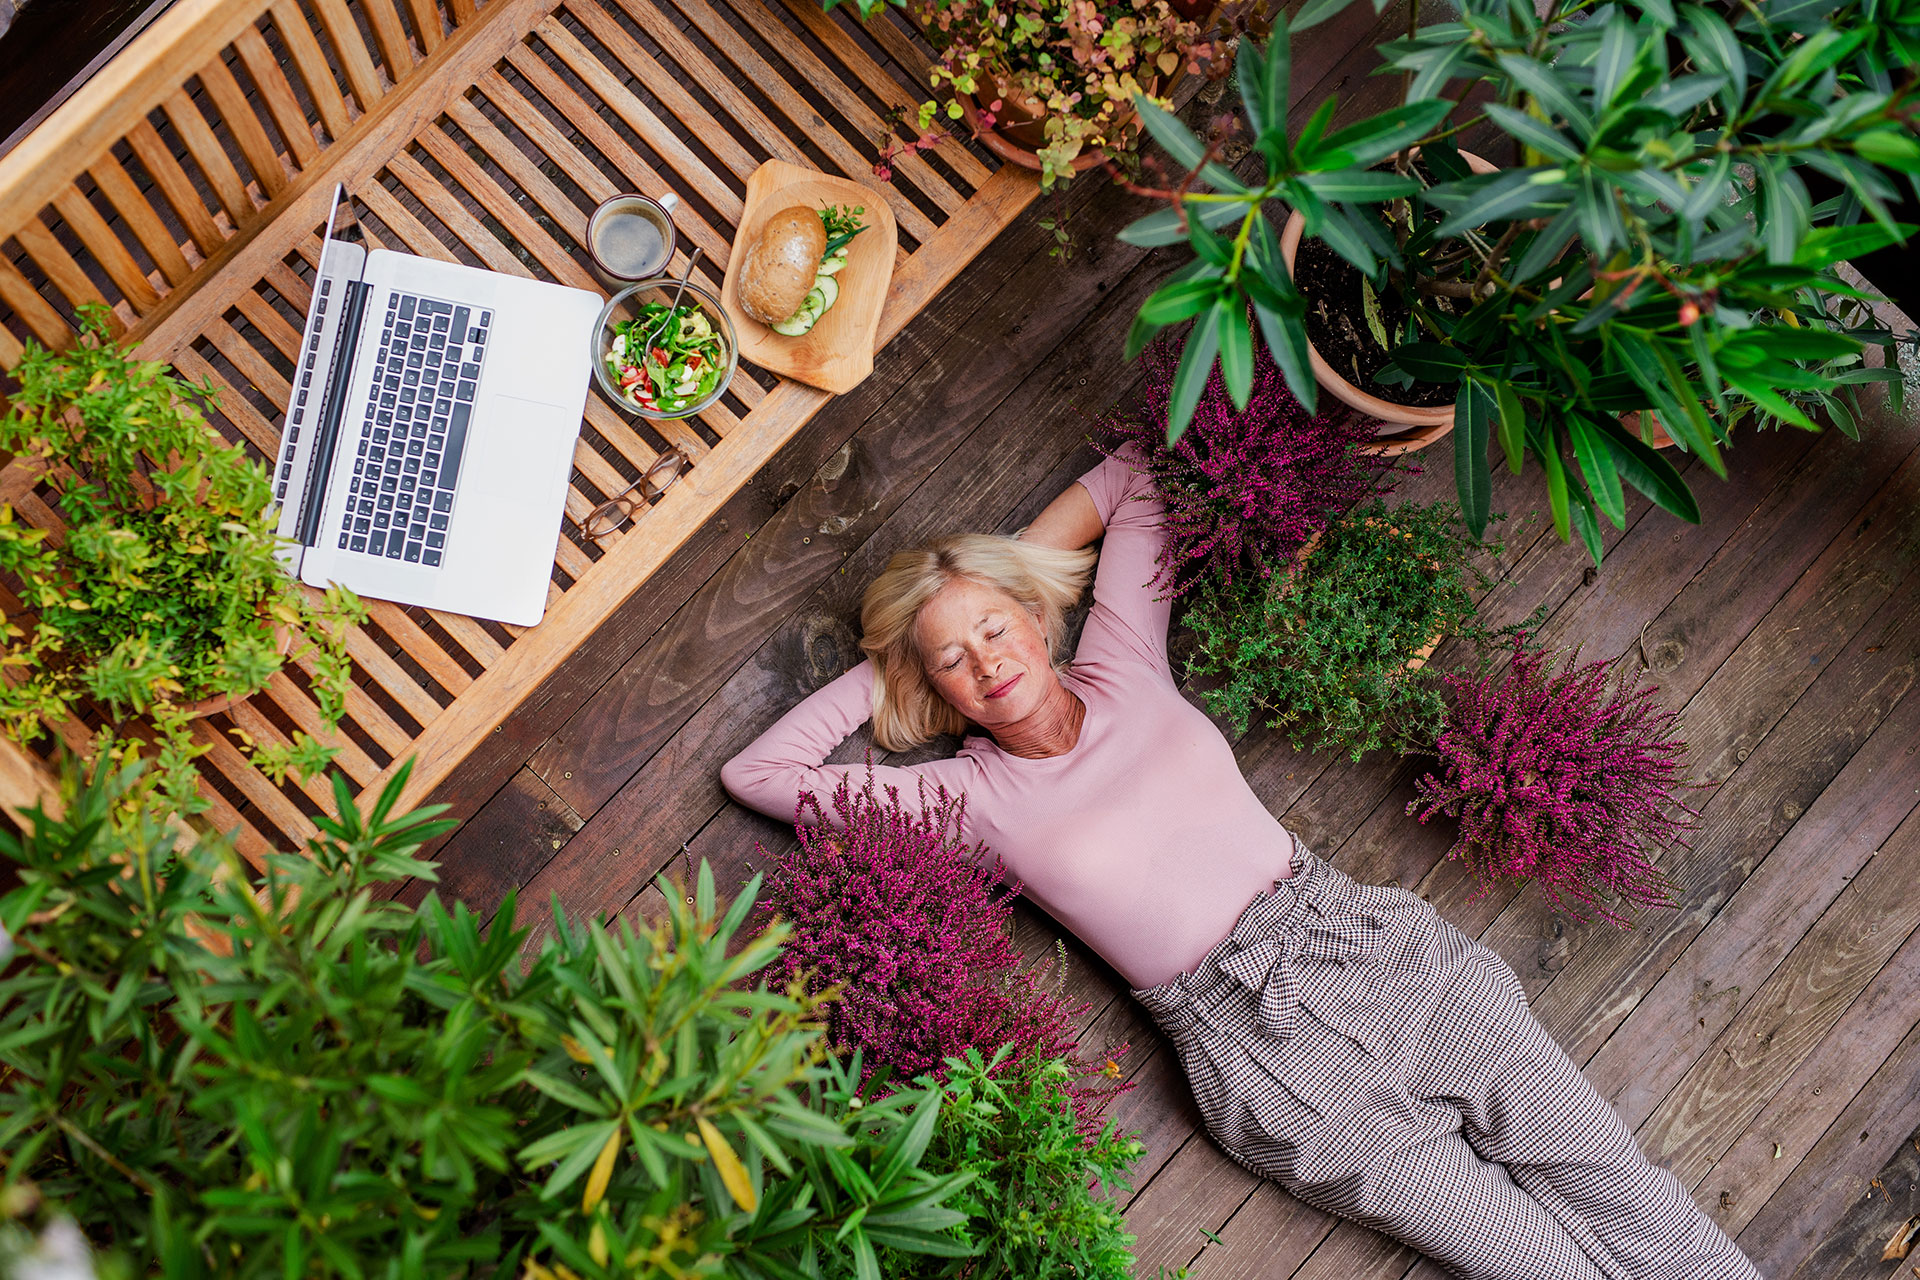 A woman has set her work laptop aside to take a break laying down on her wooden patio garden.